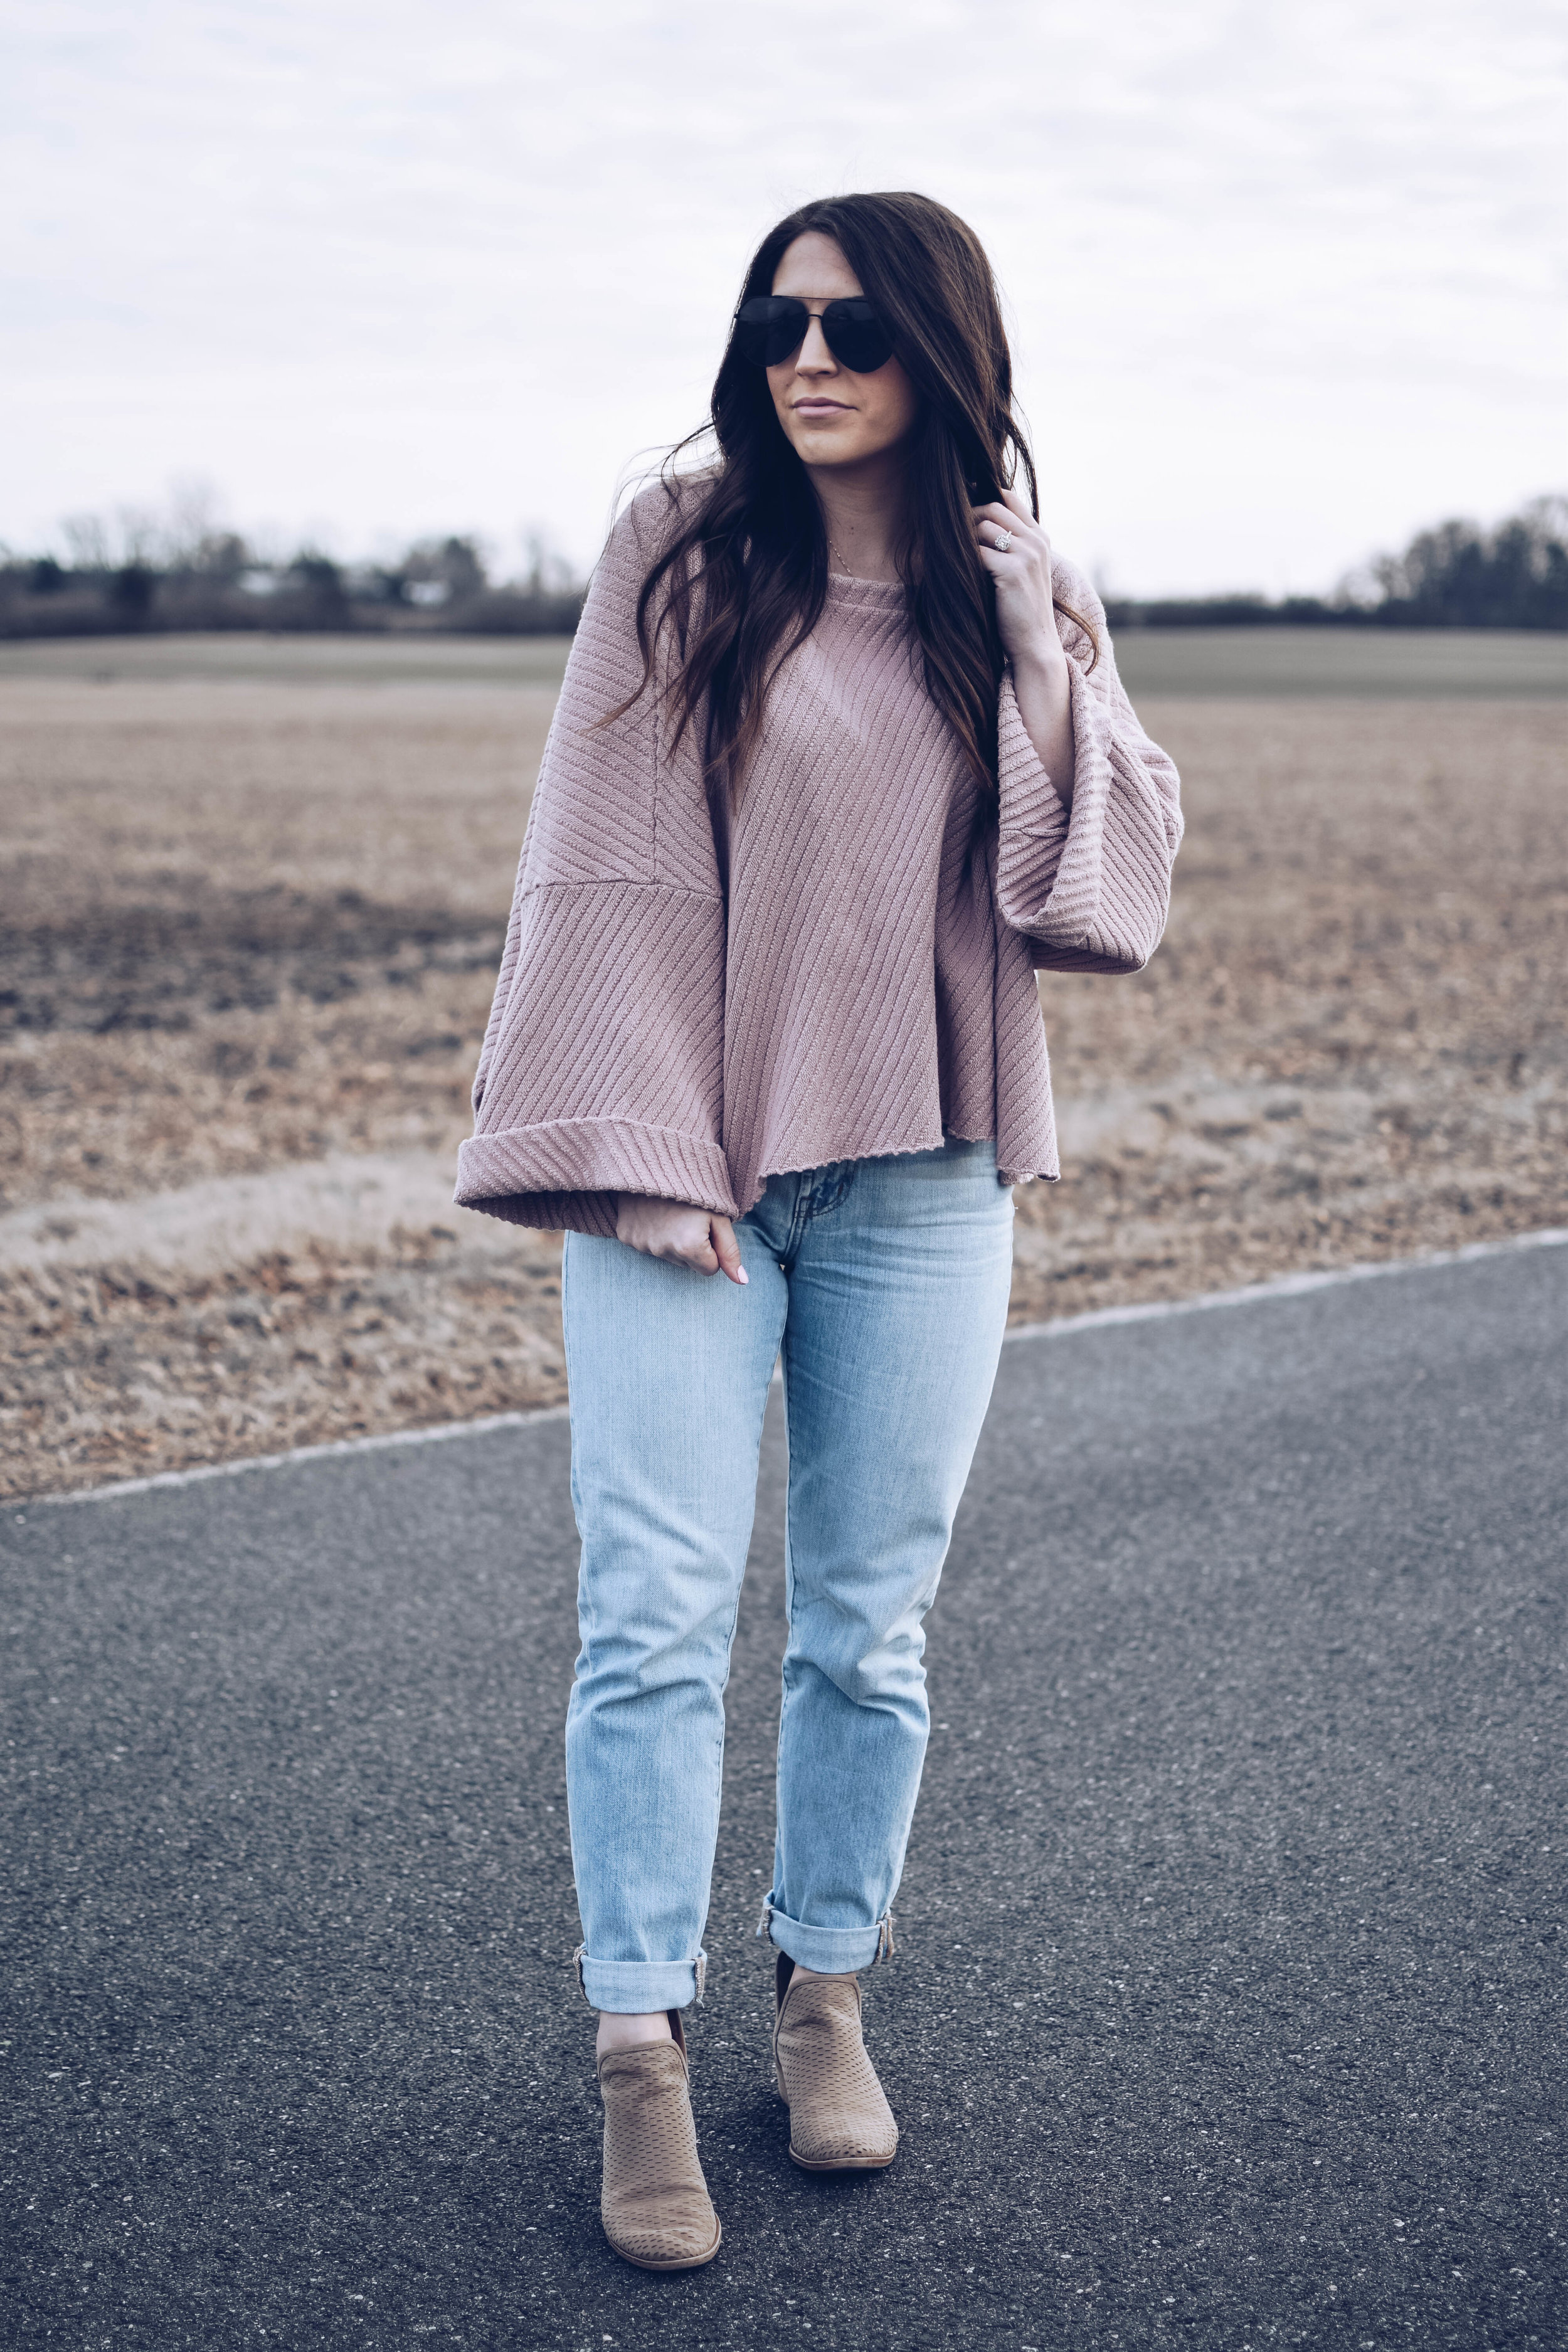 Free People Sweater + Madewell Denim | Pine Barren Beauty | spring transition outfit idea, spring outfit inspiration. how to style mom jeans, light wash denim, oversized sweater